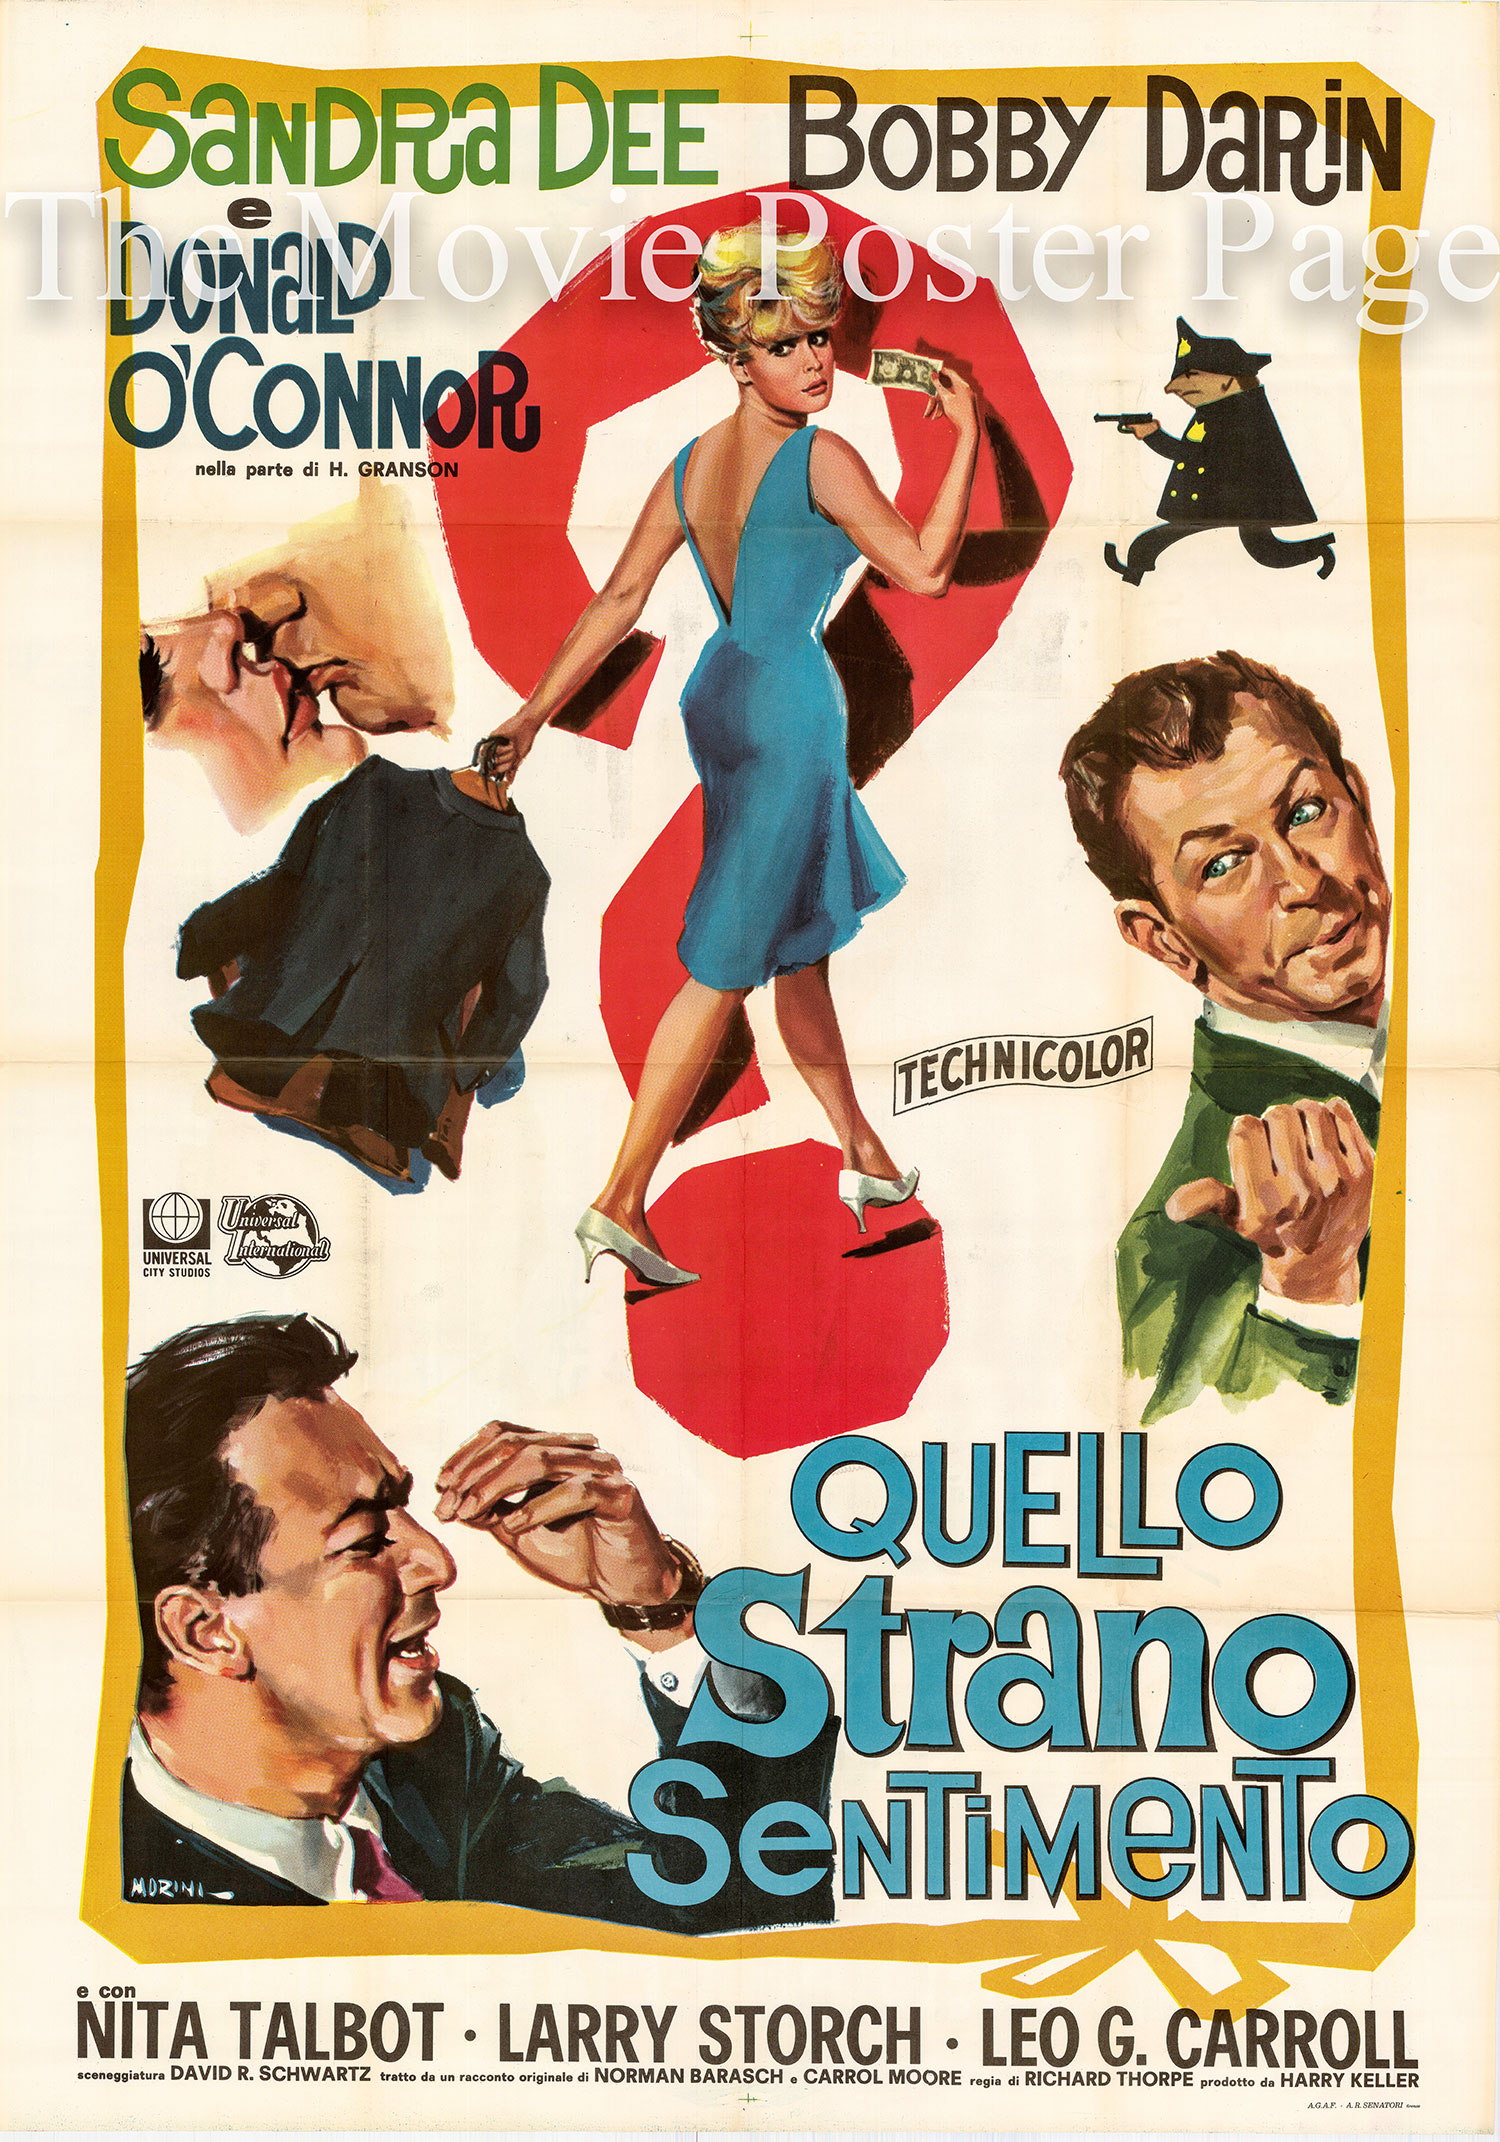 Pictured is an Italian two-sheet poster for the 1965 Richard Thorpe film <i>That Funny Feeling</i> starring Bobby Darin and Sandra Dee.